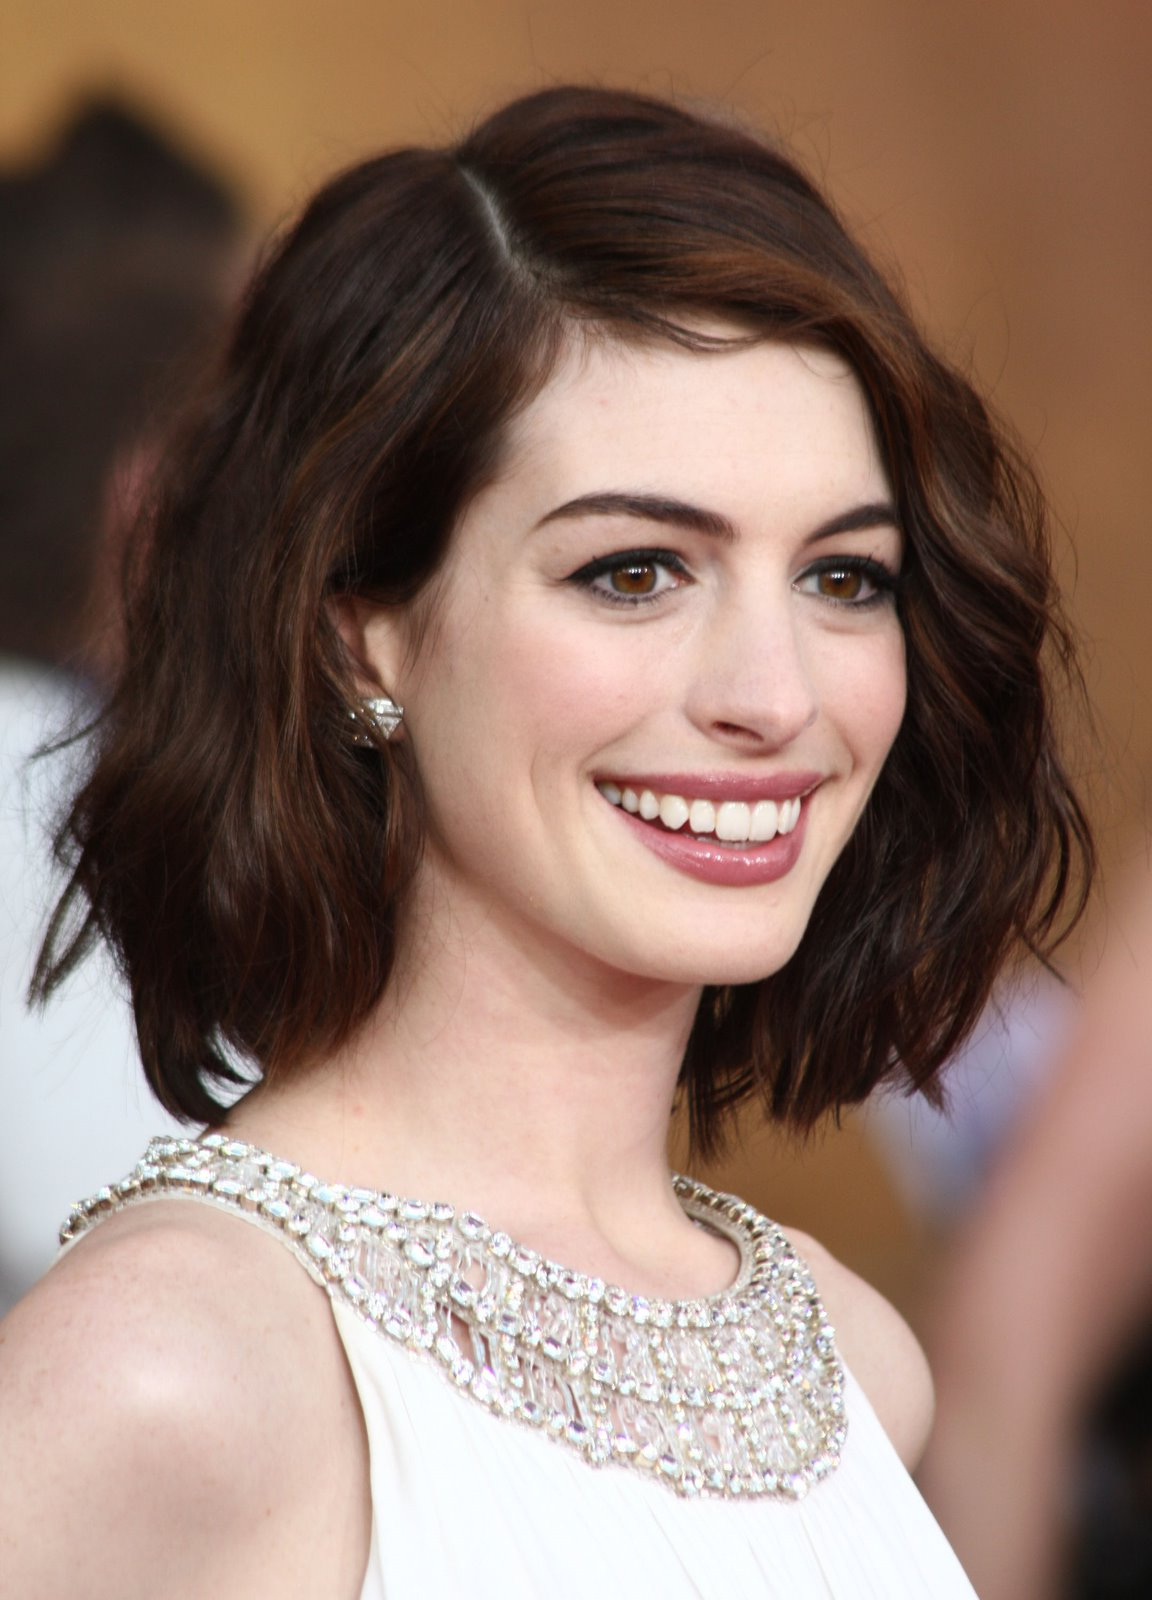 Hairstyles For Short Hair For Prom | 1080P Hd Wallpaper With Prom Short Hairstyles (View 23 of 25)